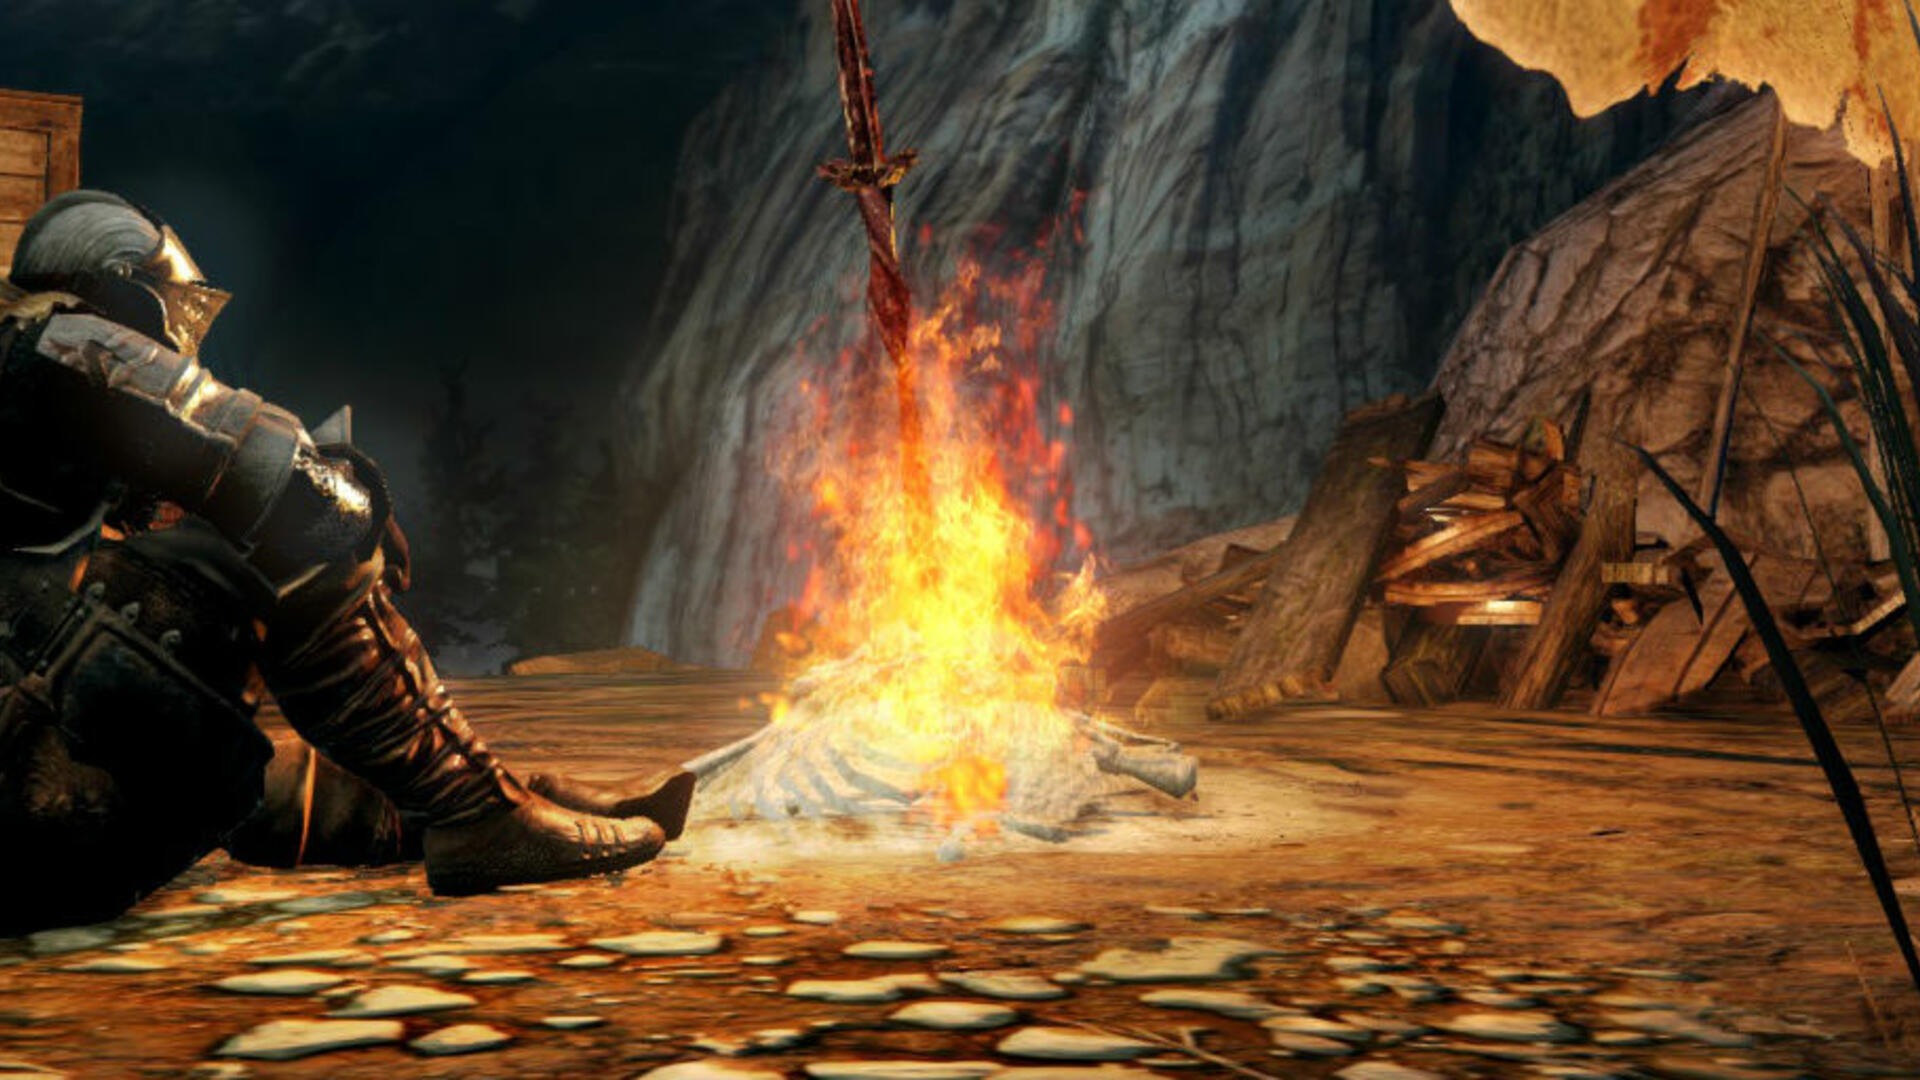 Dark Souls 2 Guide: Explore the Black Gulch and Defeat the Rotten